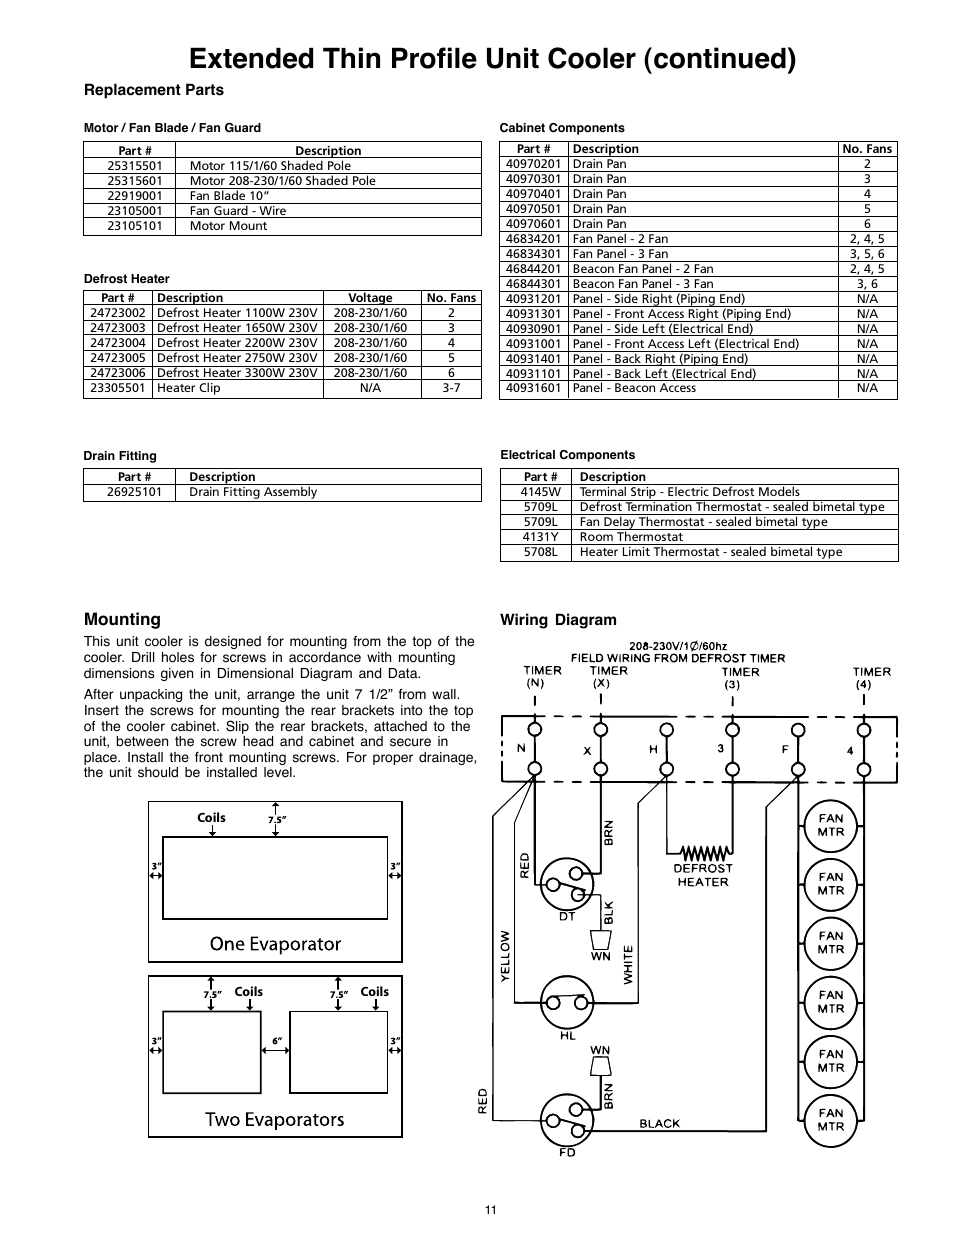 heatcraft refrigeration products 25005601 page11 extended thin profile unit cooler (continued), mounting heatcraft wiring diagram at webbmarketing.co